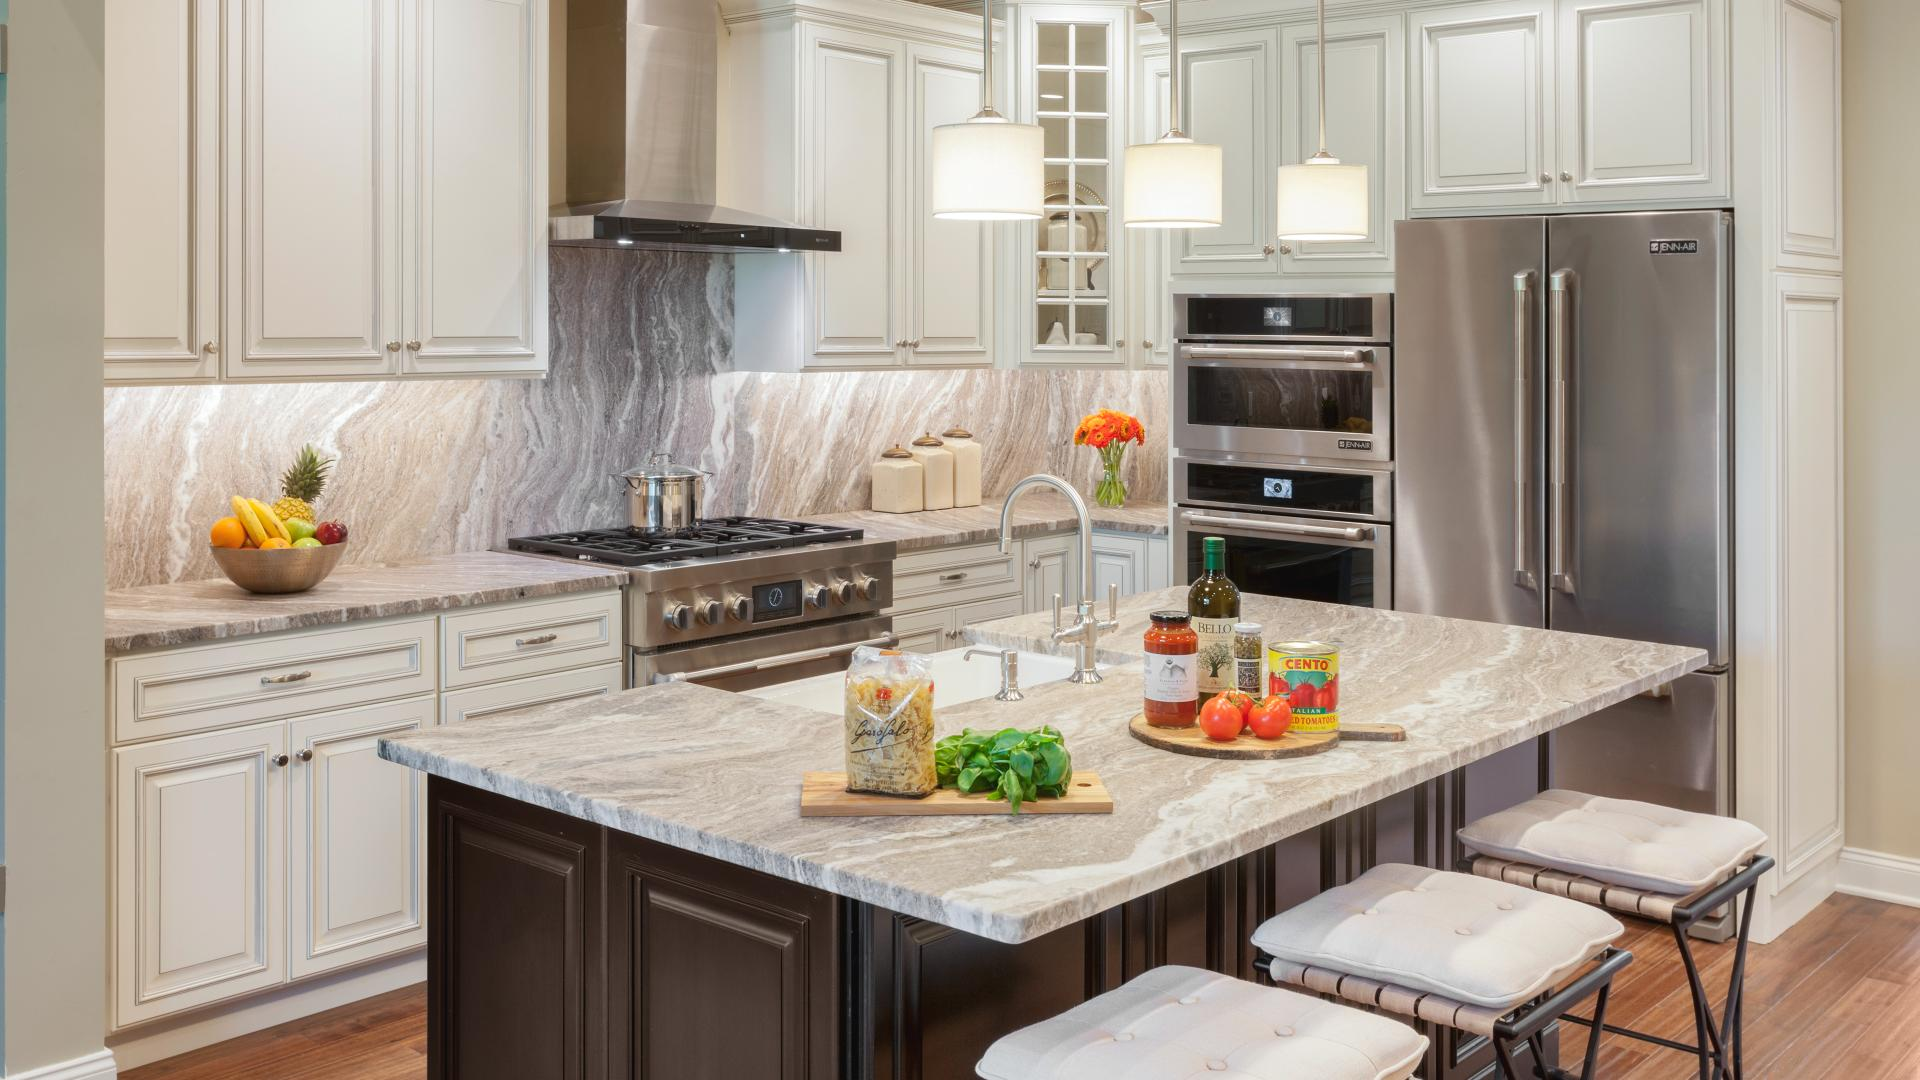 Photos are images only and should not be relied upon to confirm applicable features - Kitchen with beautiful cabinetry and marble countertops